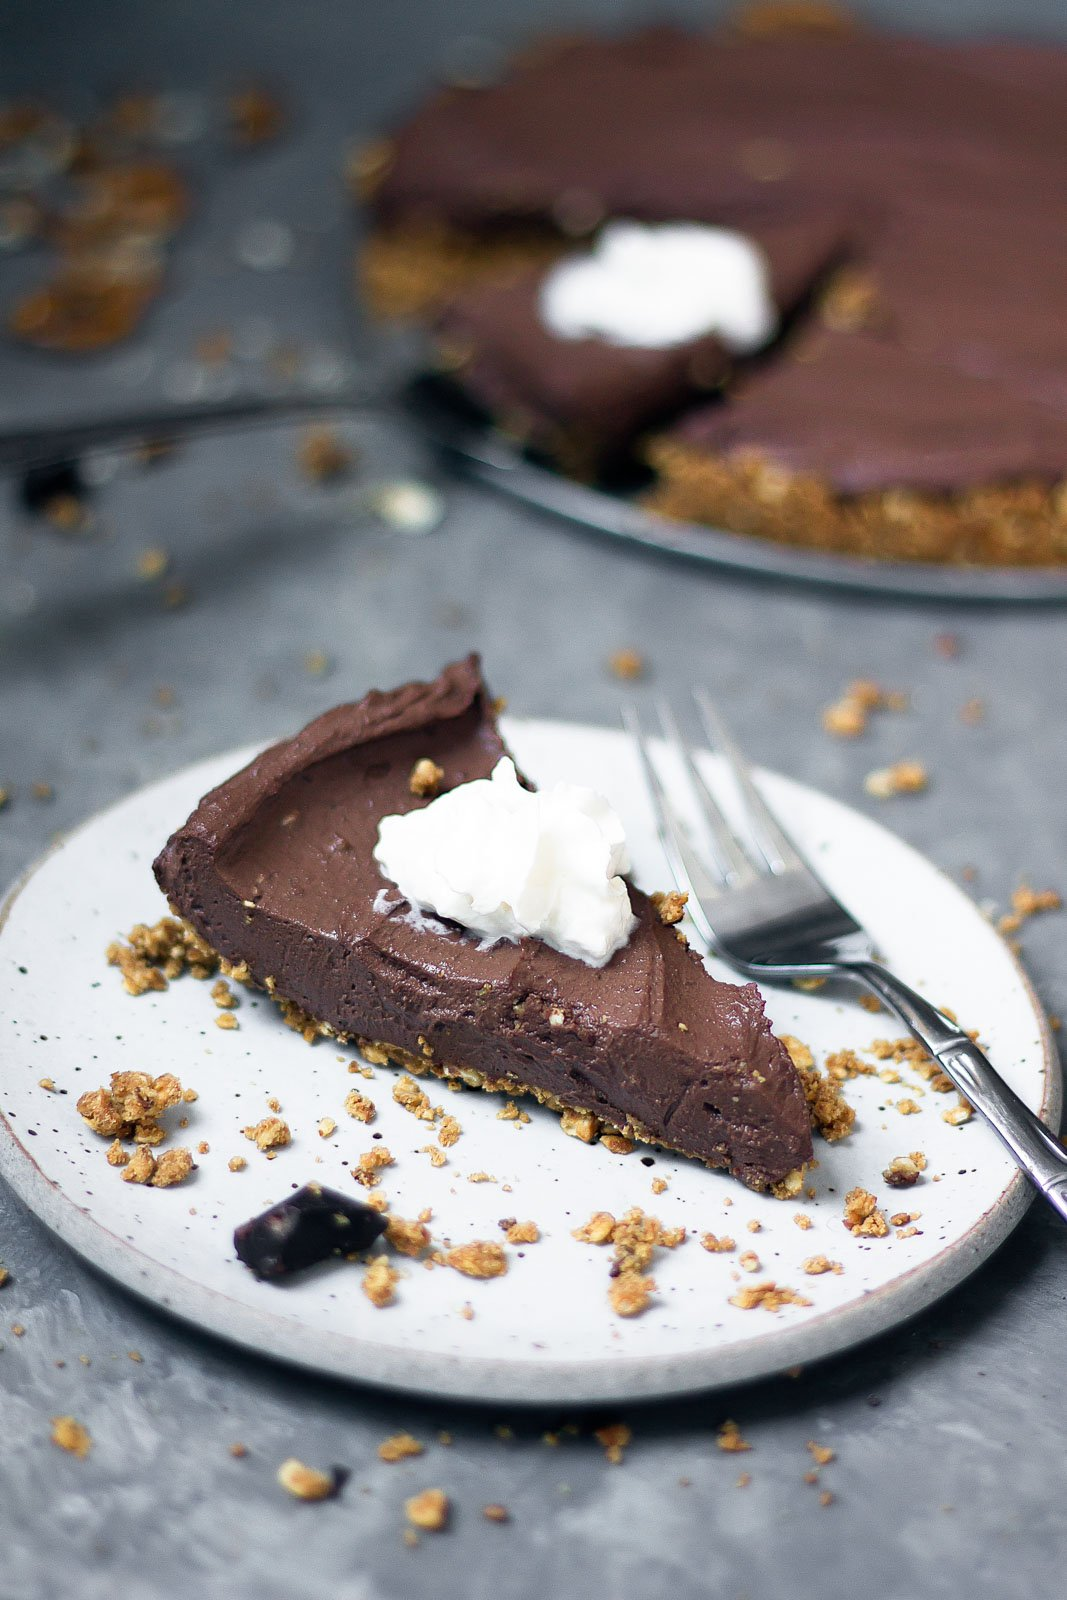 Creamy vegan chocolate tofu cheesecake with a sweet and salty peanut butter pretzel crust. Absolutely to die for & almost no bake!